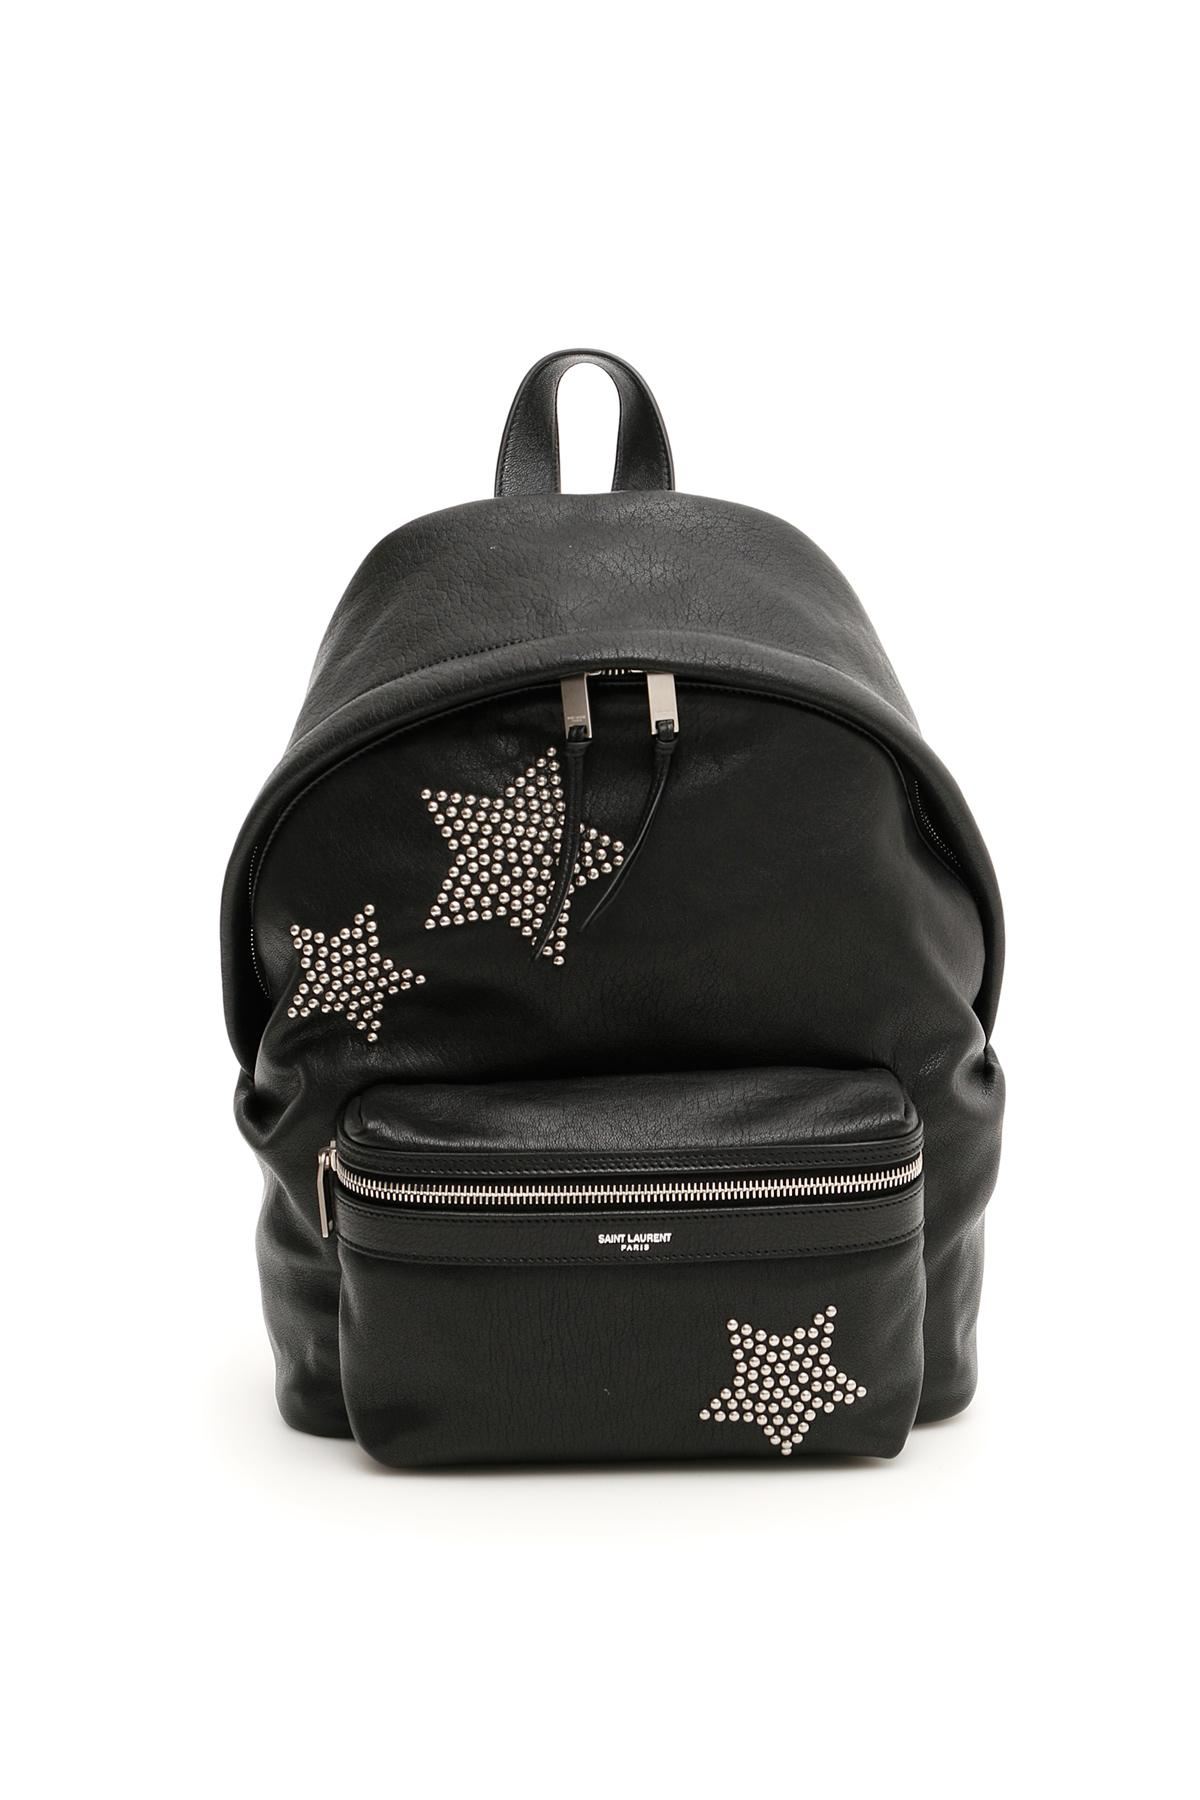 78bf382d3a Saint Laurent Leather Mini City Backpack in Black - Save ...